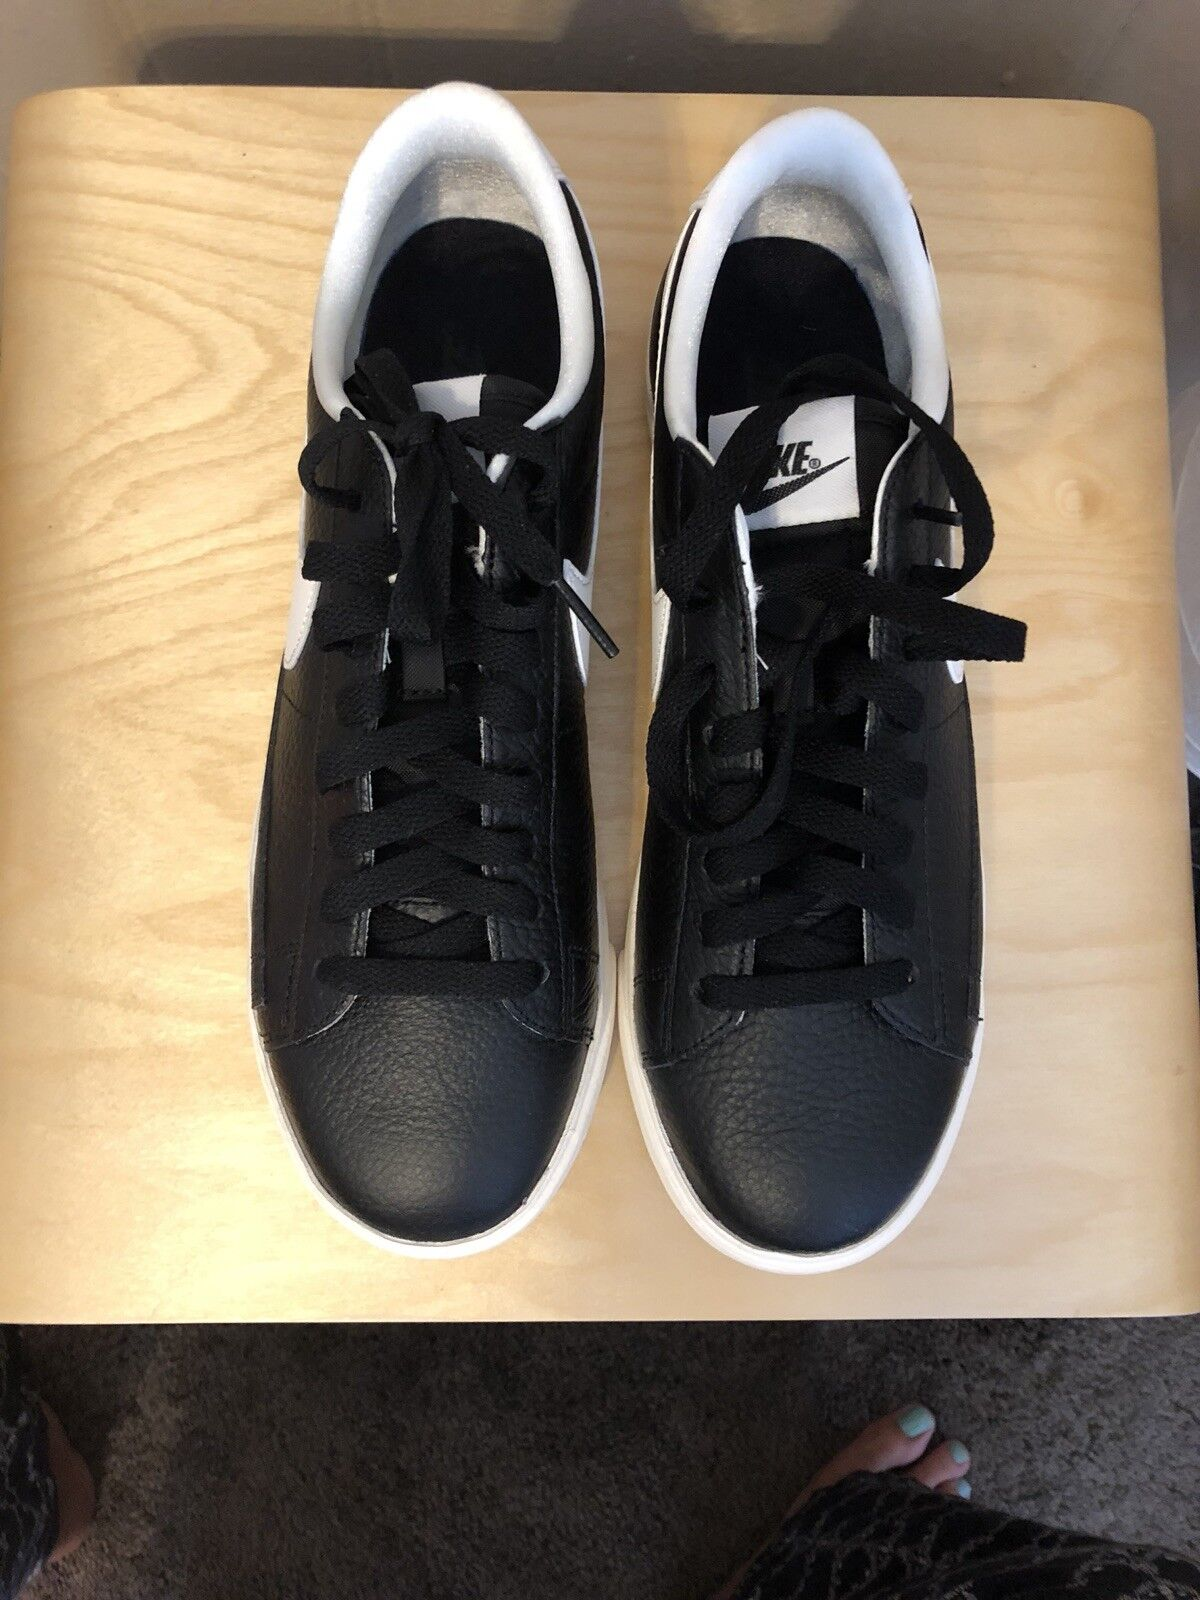 NIKE BLAZER LOW LTR PRM WOMEN`S SHOES TRAINING RUNNING ATHLETIC NEW SZ 10